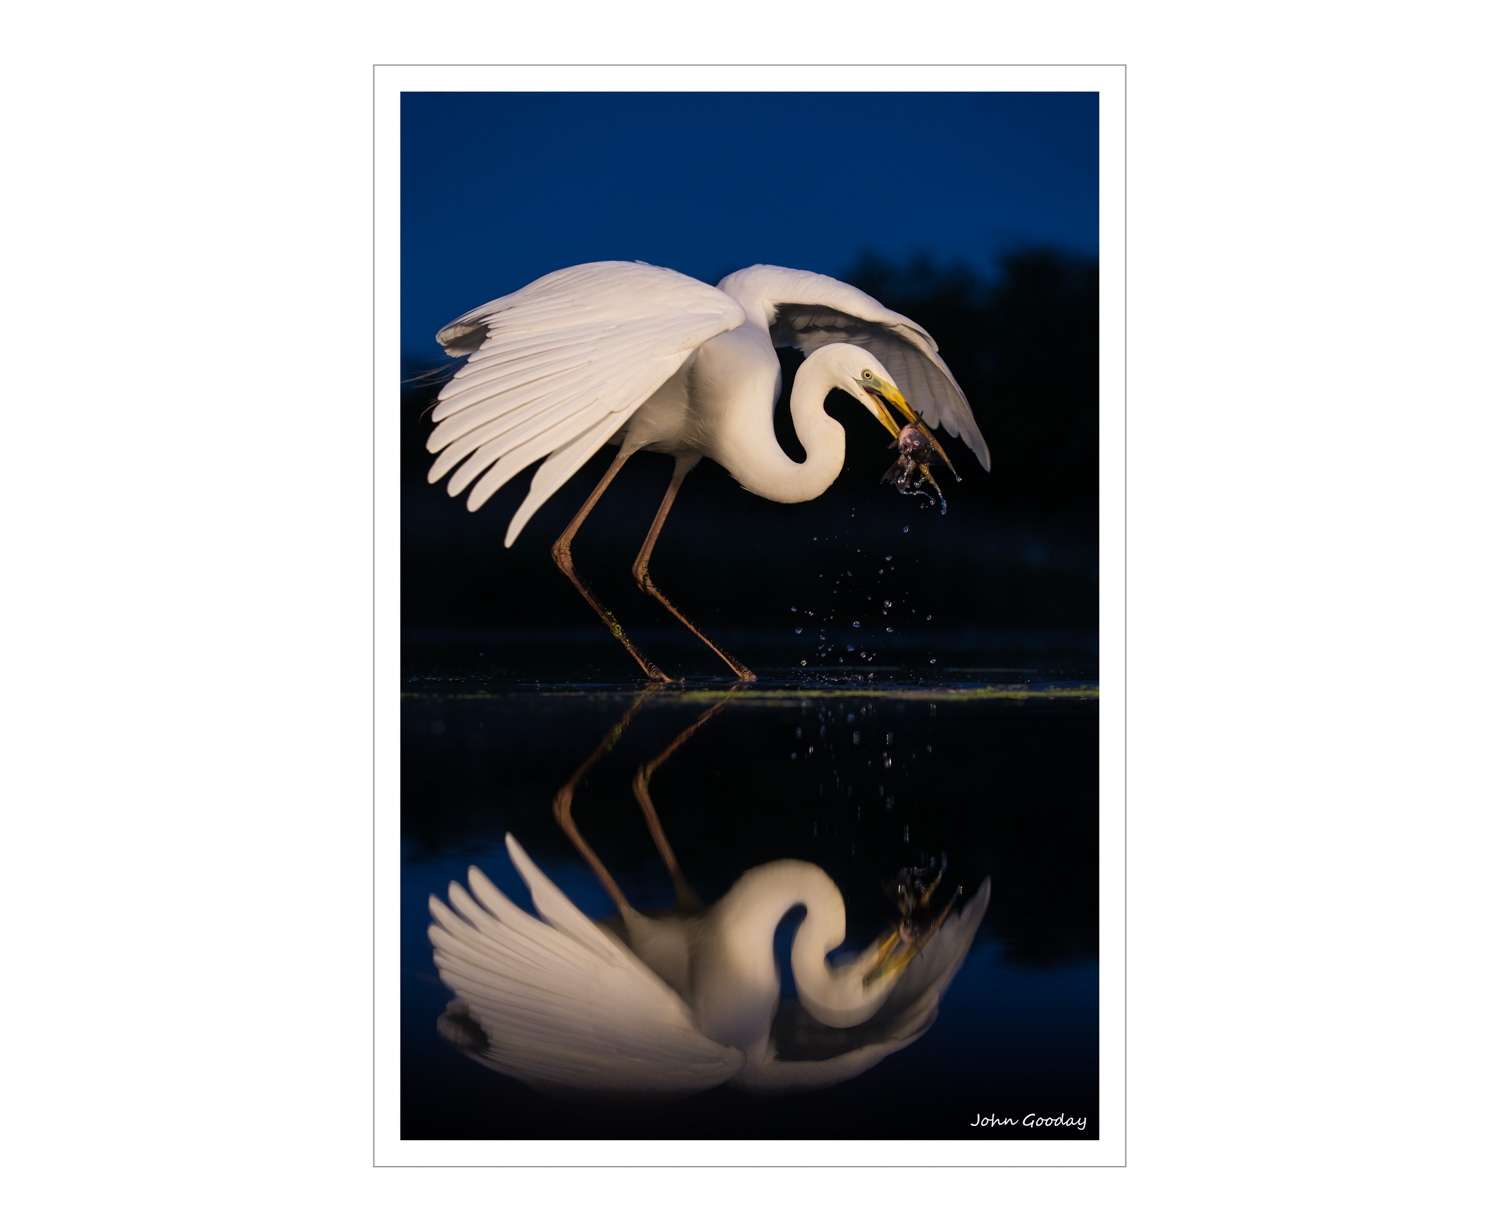 (Image: Great Egret catching a fish. Canon EOS 1DX, EF70-200mm f/2.8L IS II, 1/1000 sec @ f/4, ISO 1250, tripod, hide)